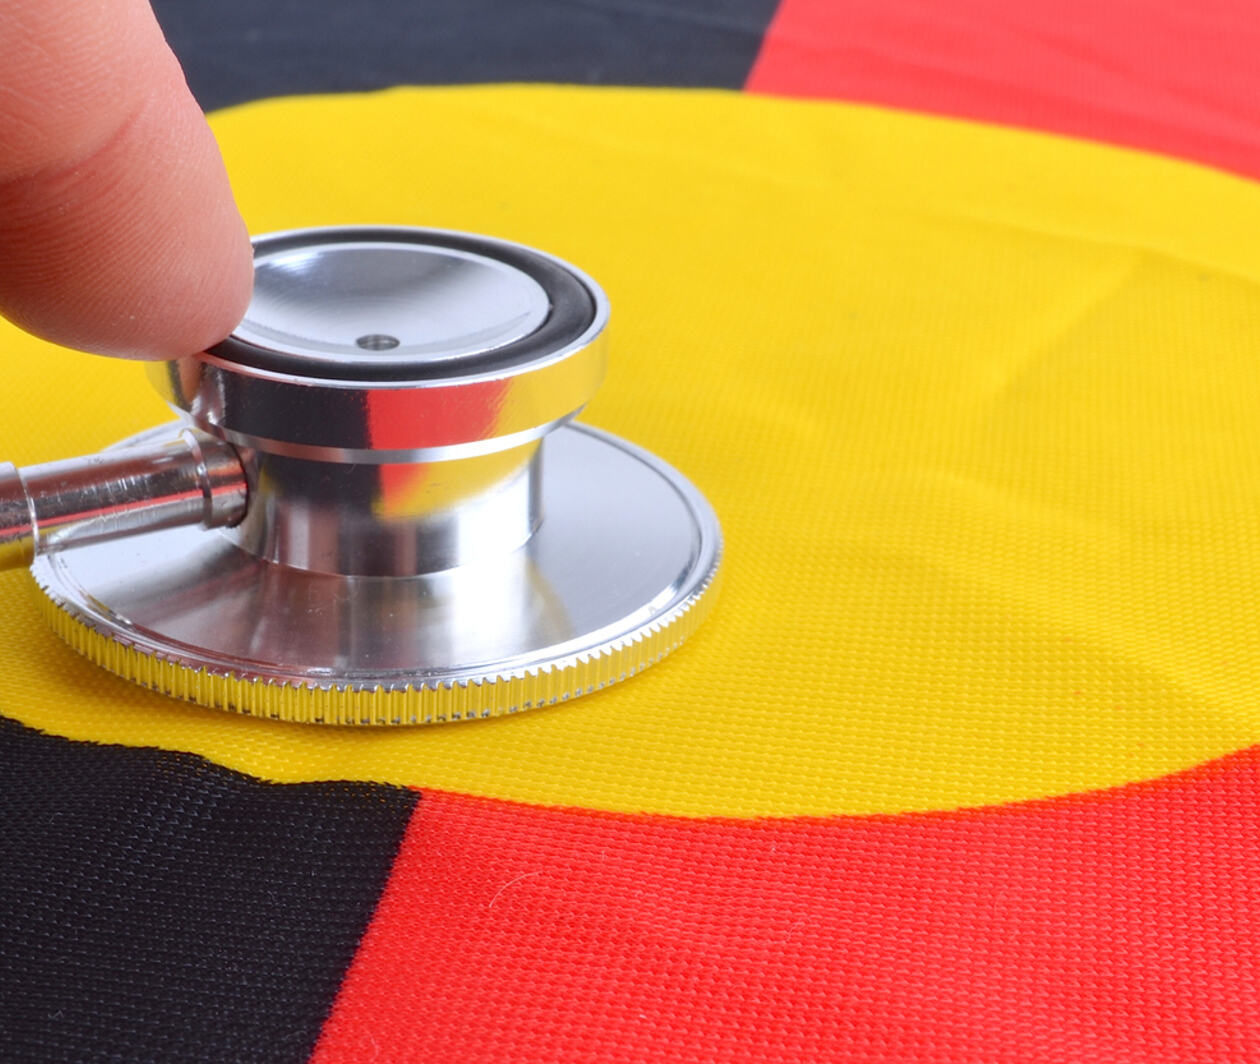 Providing Culturally Safe Care for Aboriginal and Torres Strait Islander Peoples